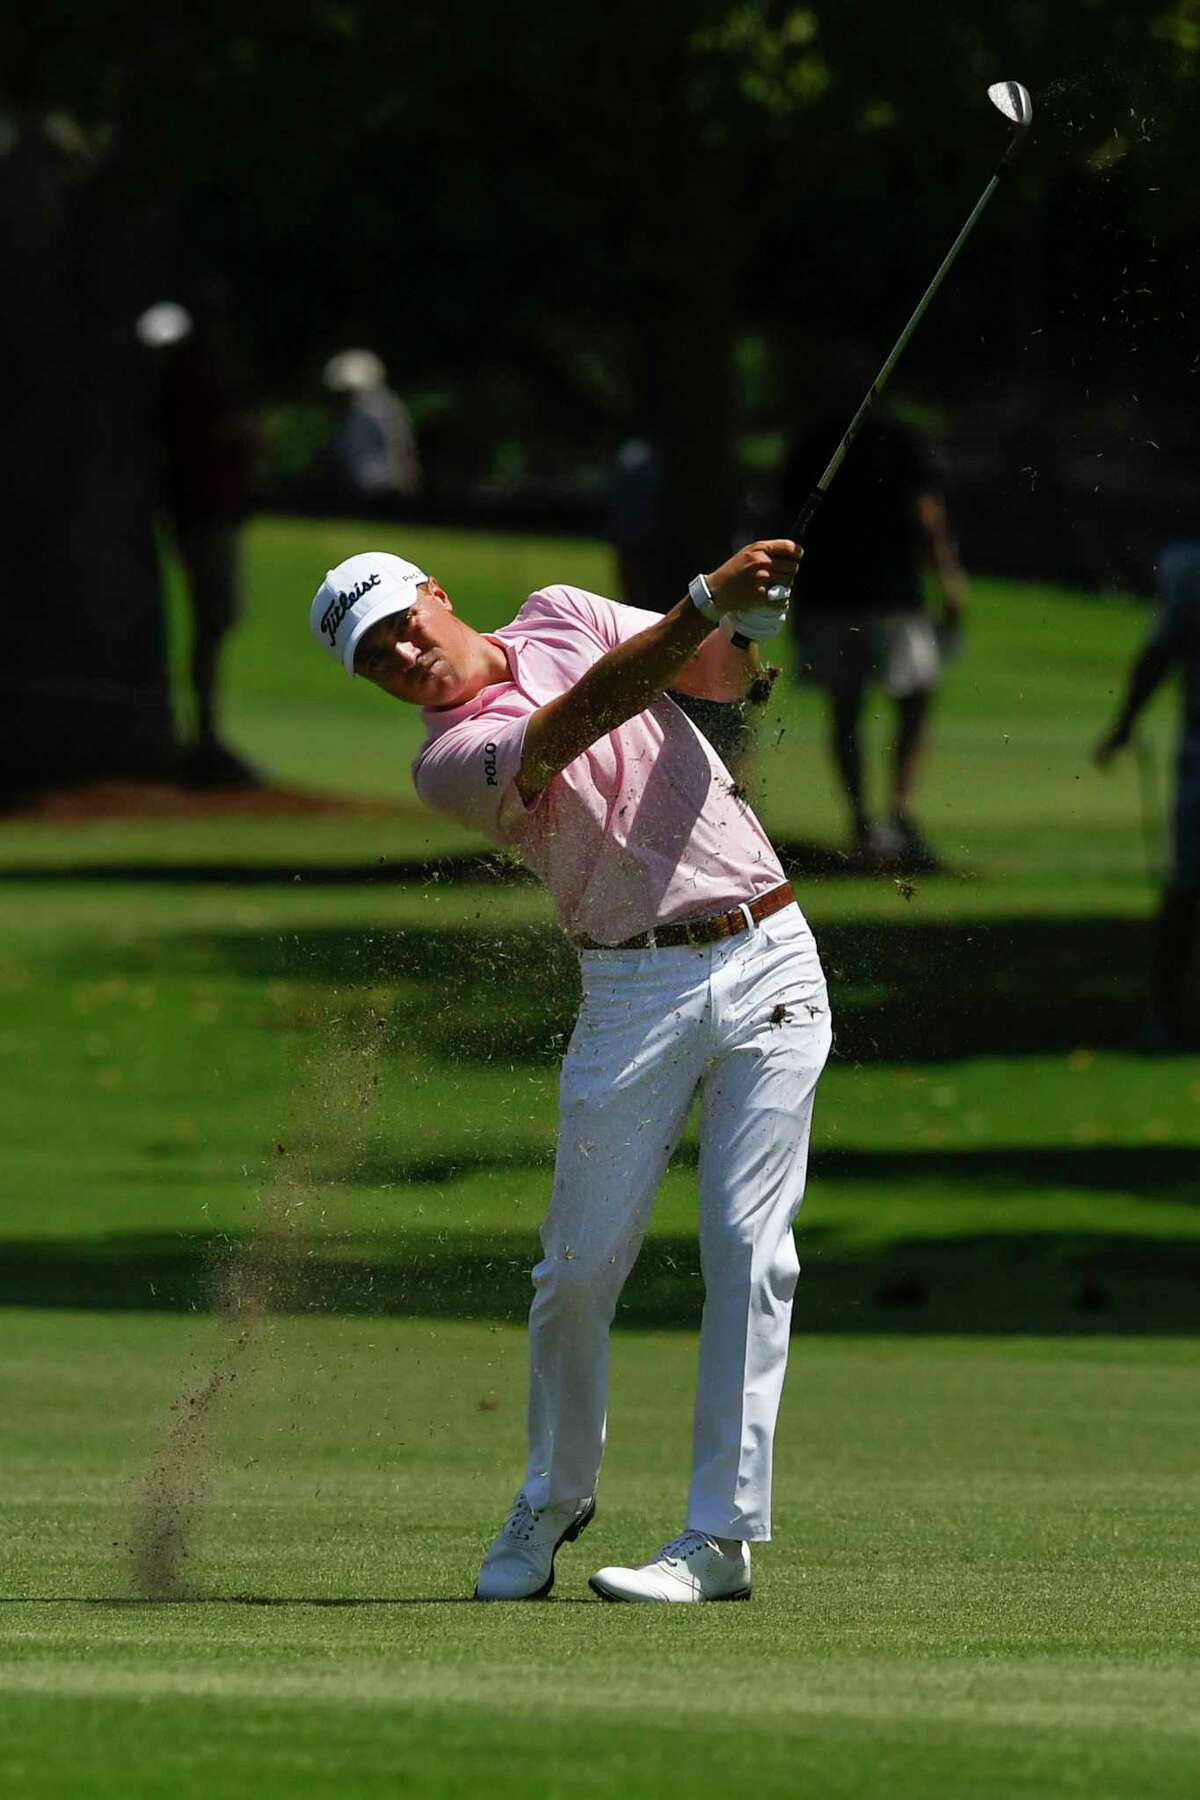 Justin Thomas hits from the third fairway during the first round of the Tour Championship golf tournament Thursday, Aug. 22, 2019, in Atlanta. (AP Photo/John Amis)